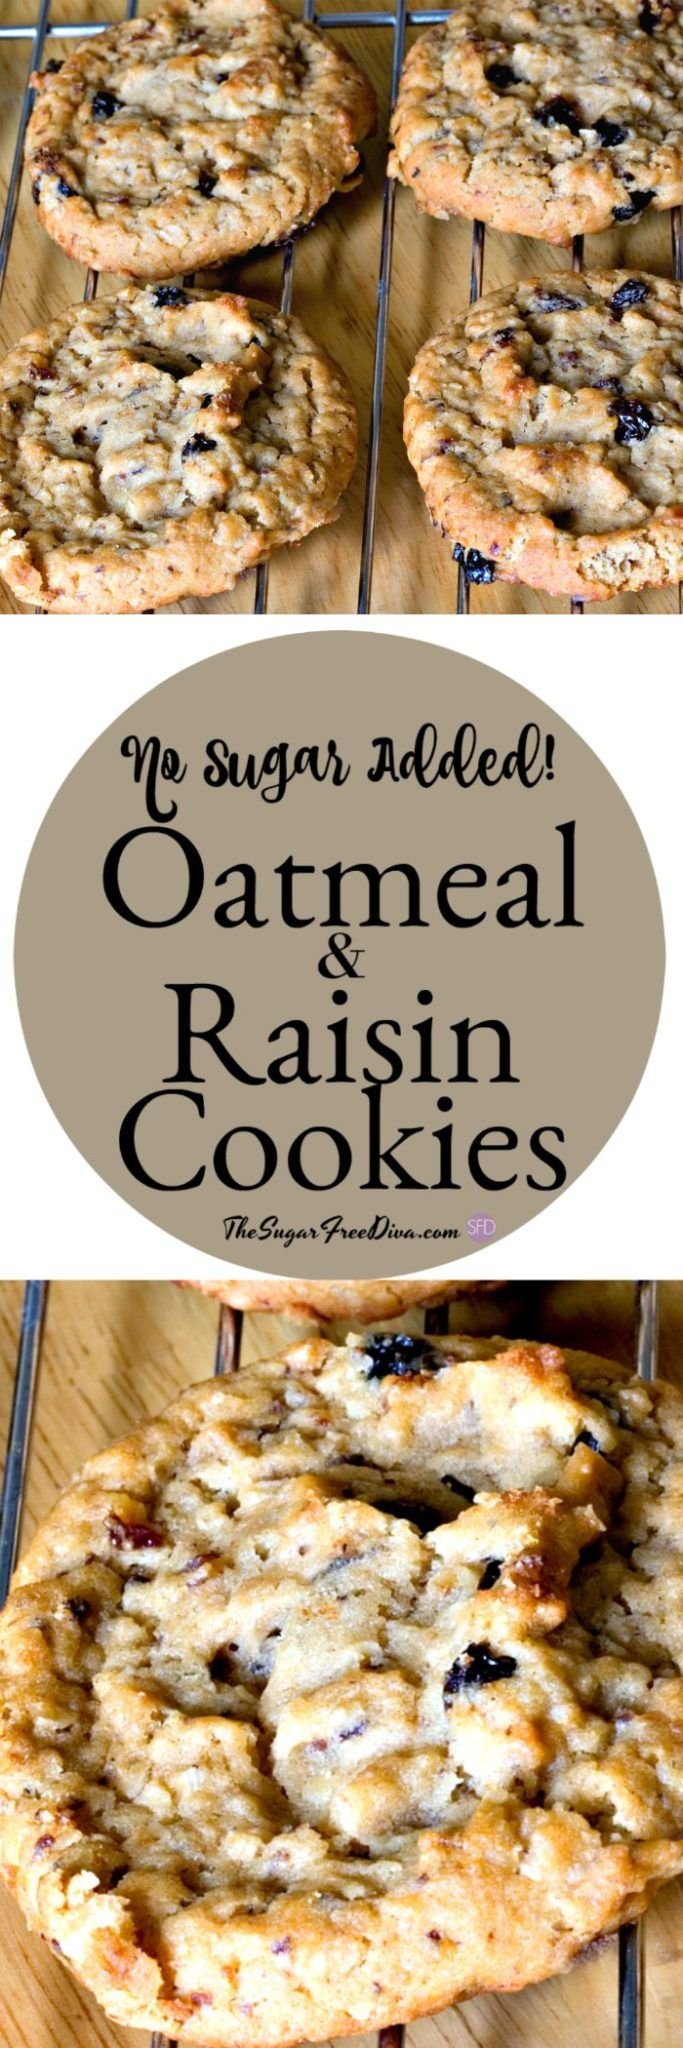 These are so yummy! No sugar added oatmeal and raisin cookies #sugarfree #recipe #cookies #oatmeal #raisin via @thesugarfreediva